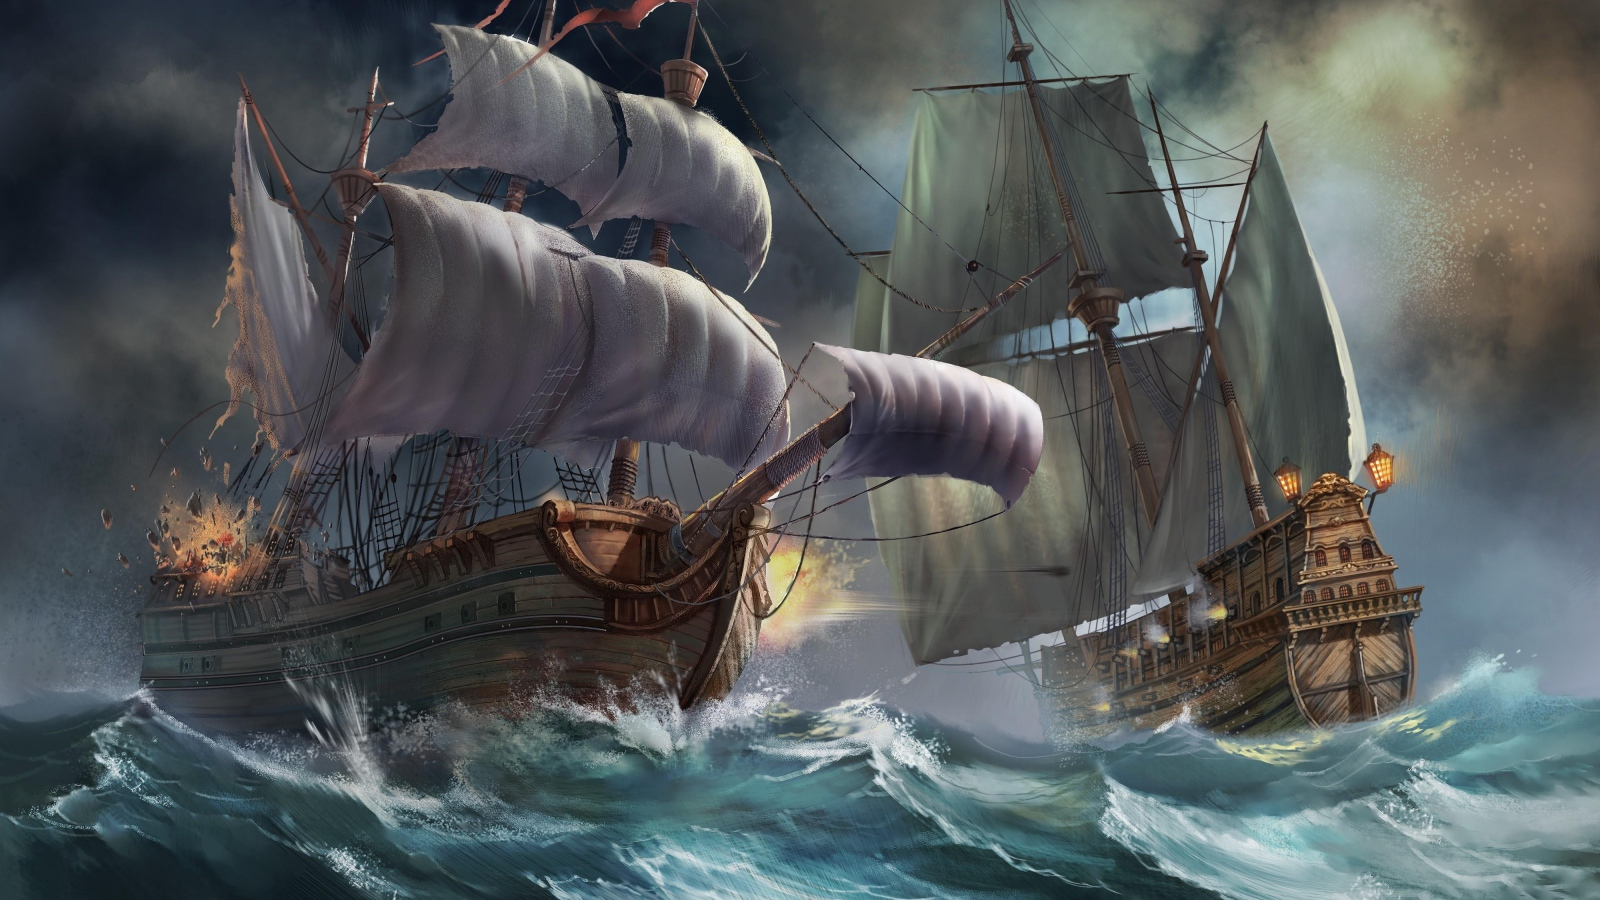 Pirates Images Ships In A Storm HD Wallpaper And